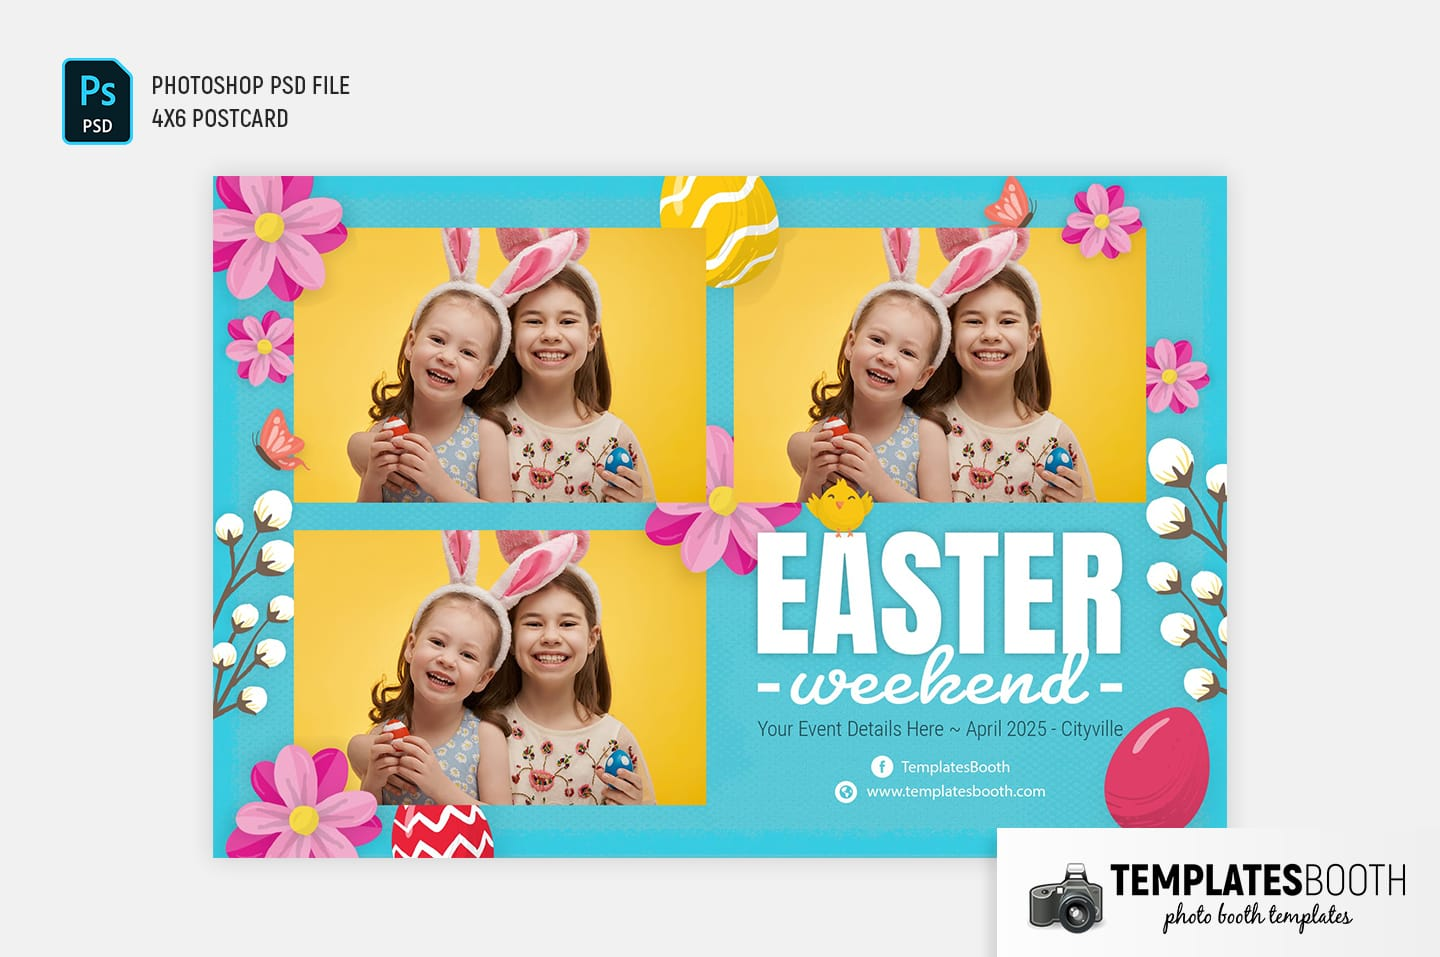 Easter Photo Booth Template (4x6 postcard)